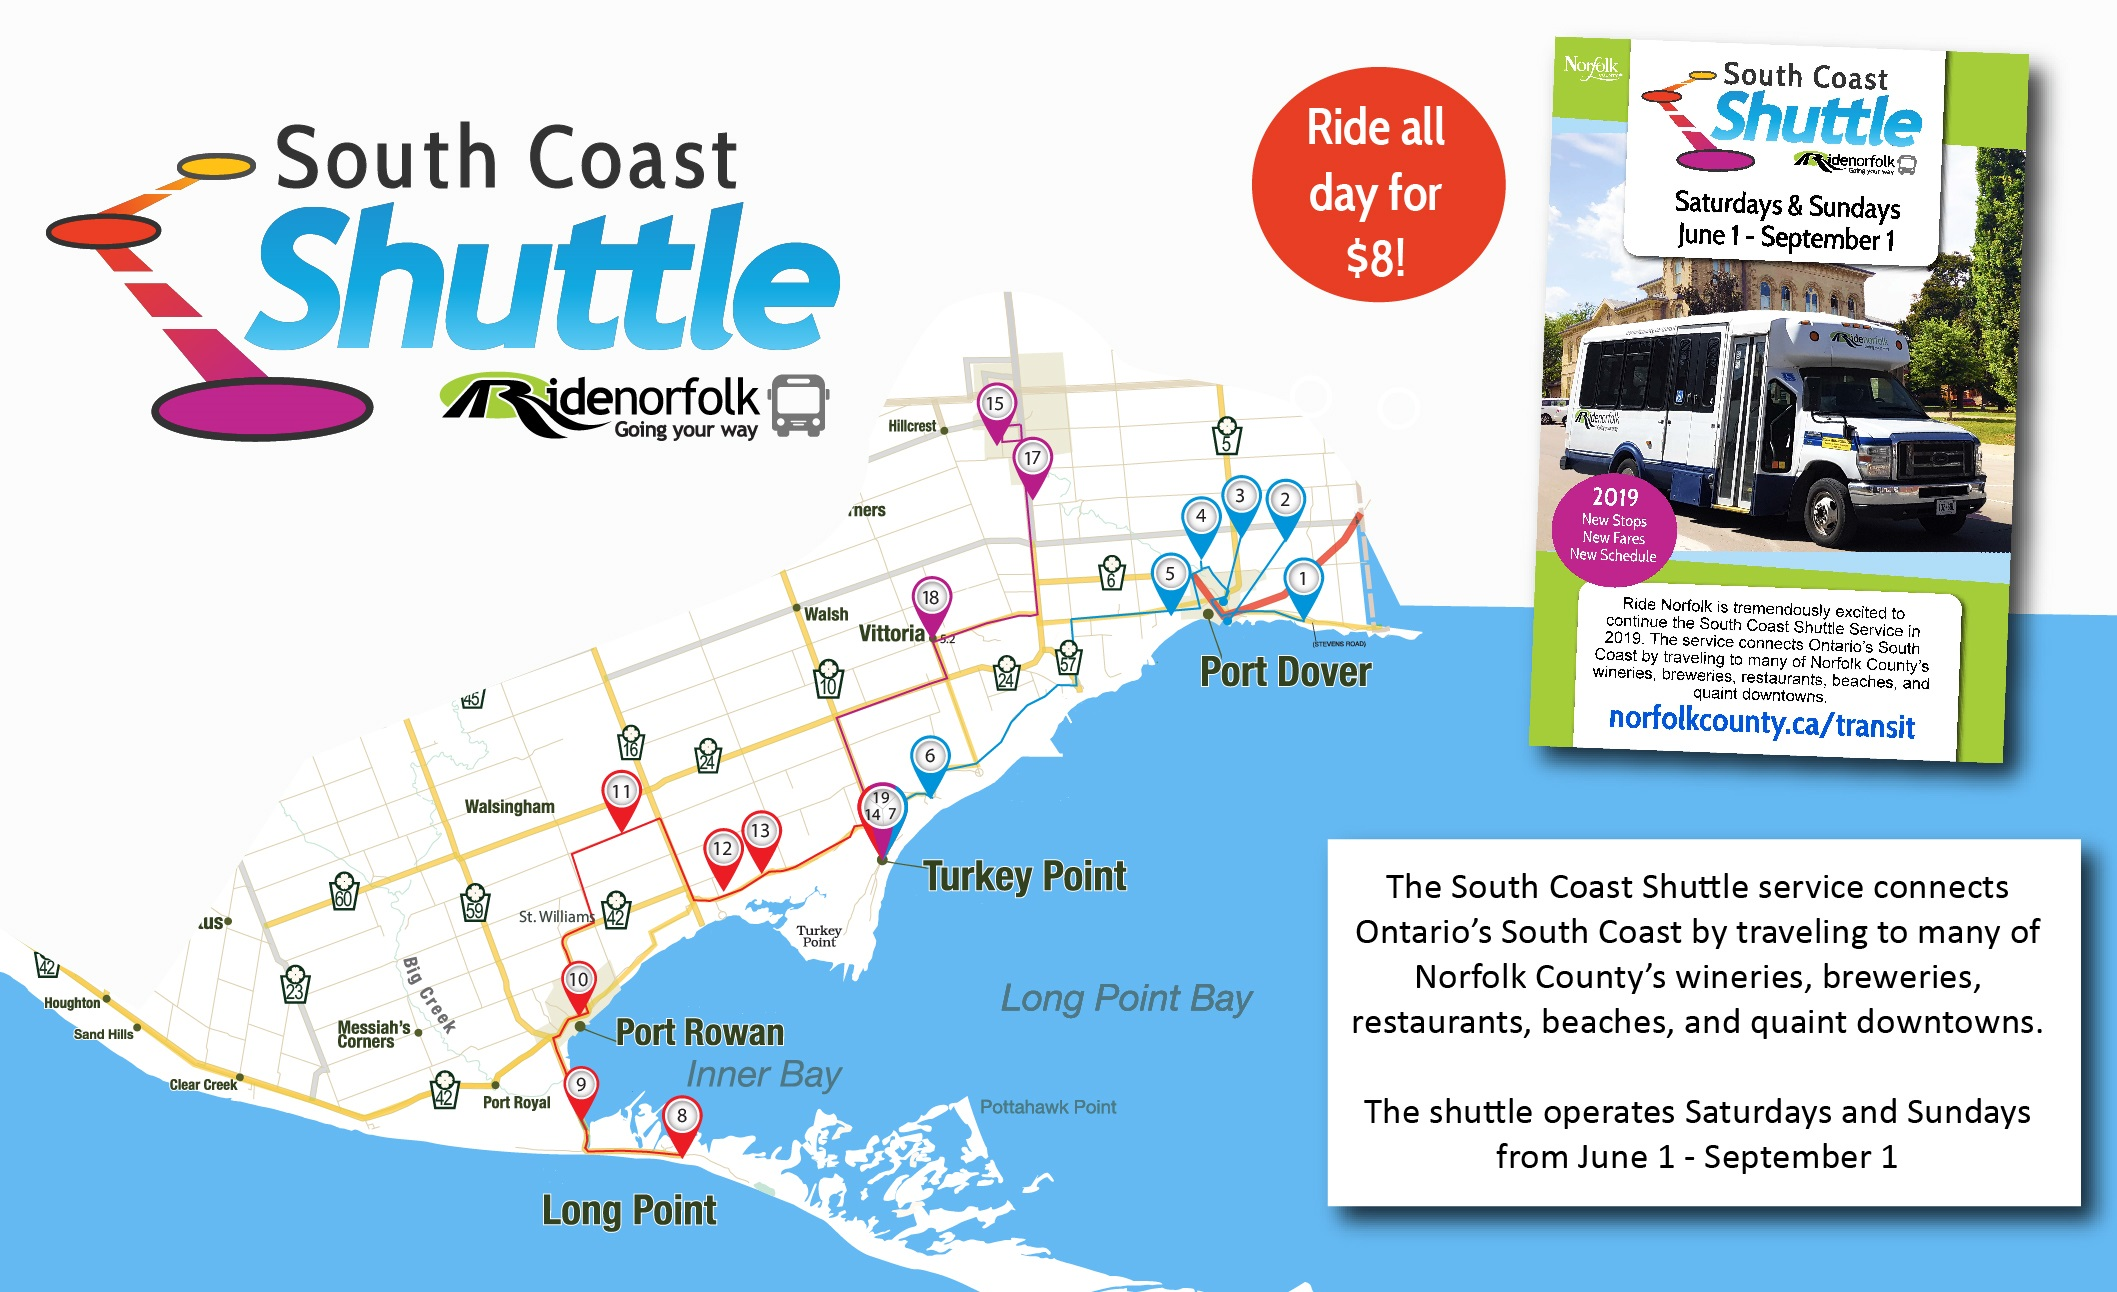 South Coast Shuttle